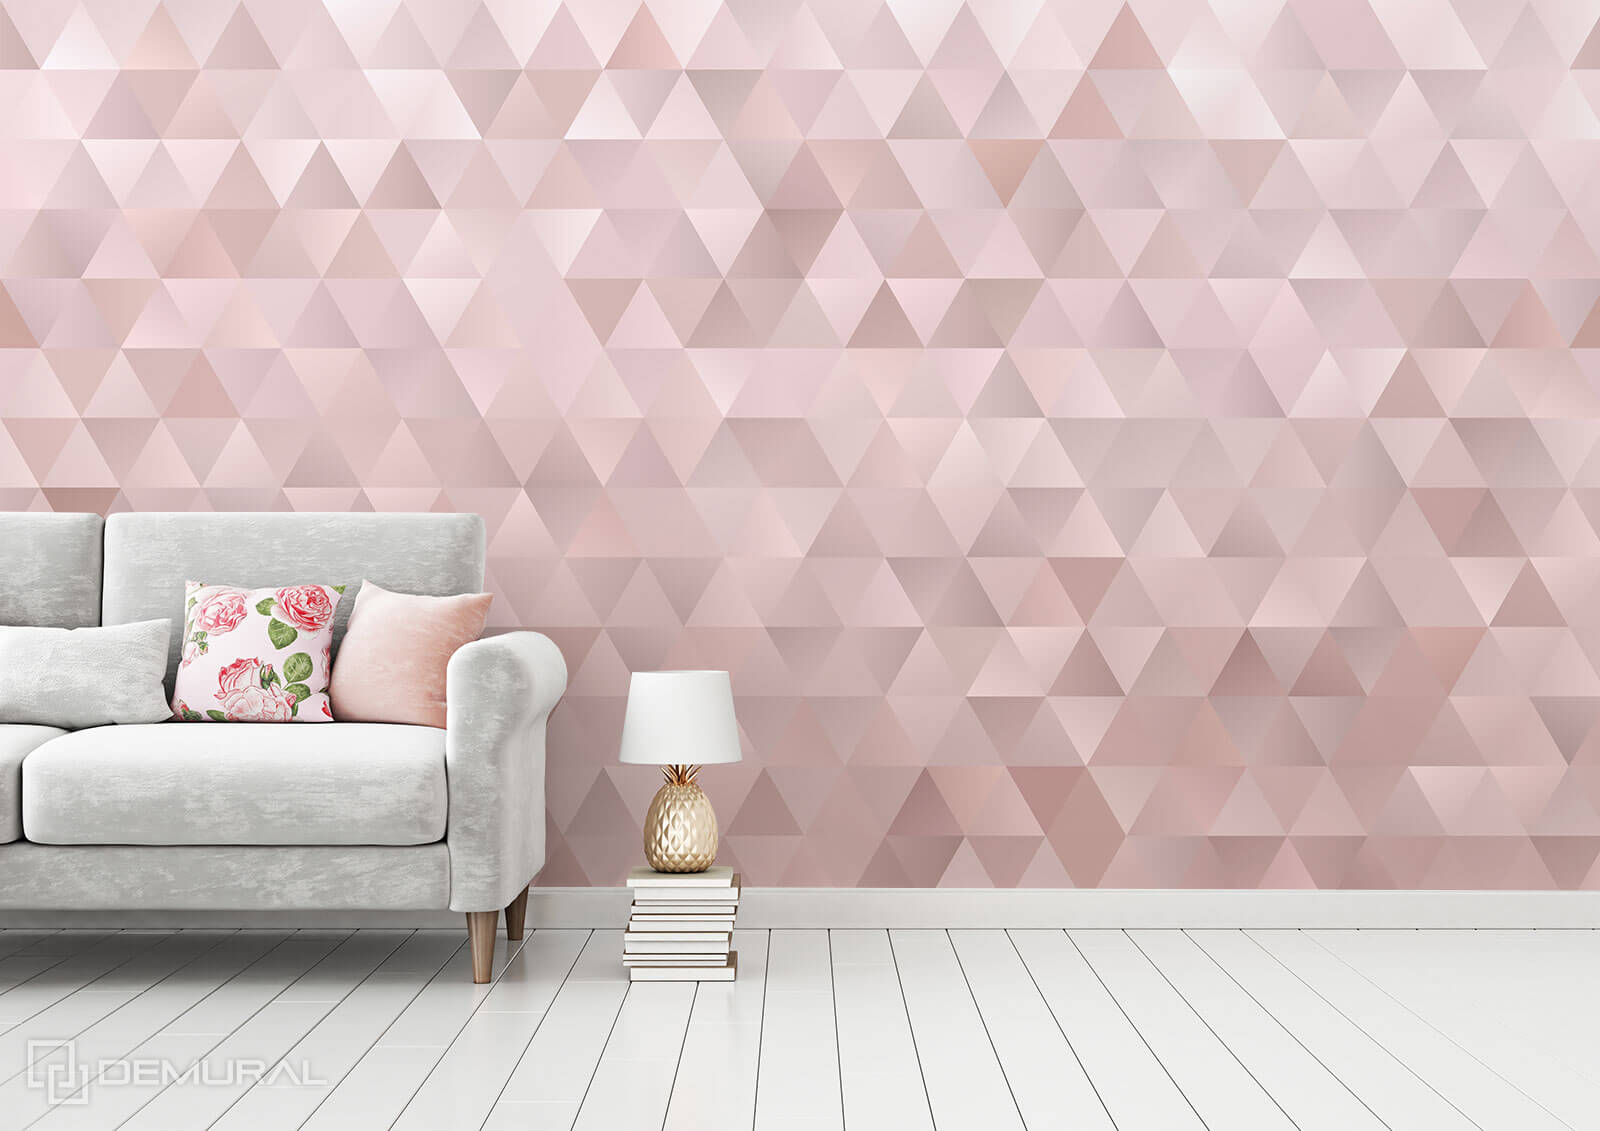 Photo wallpaper Pink triangles - Pink photo wallpaper - Demural